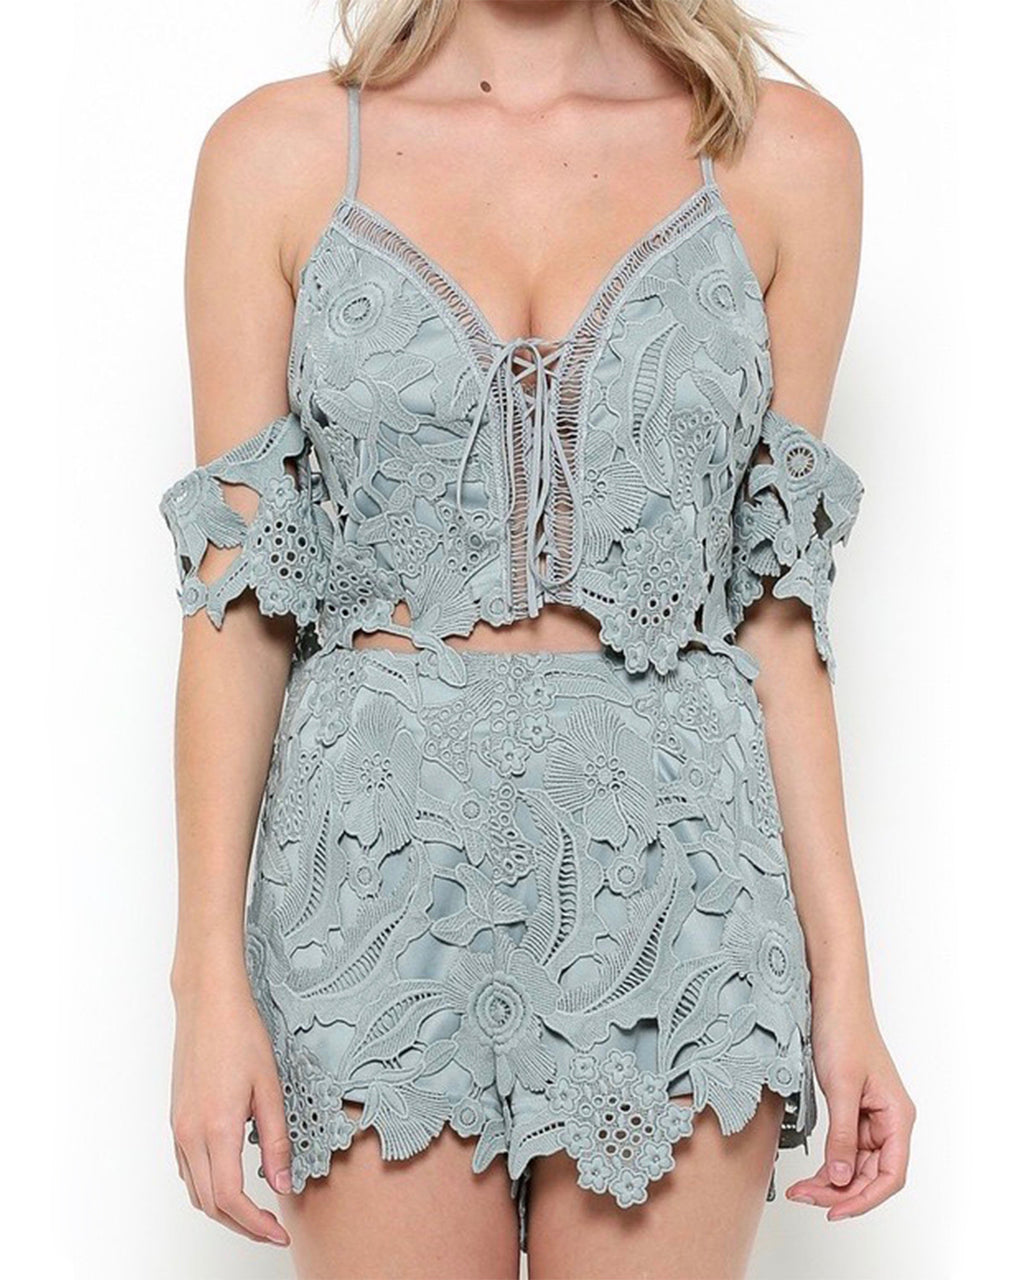 Wanderlust Floral Lace Off The Shoulder Two Piece Set in Slate Blue